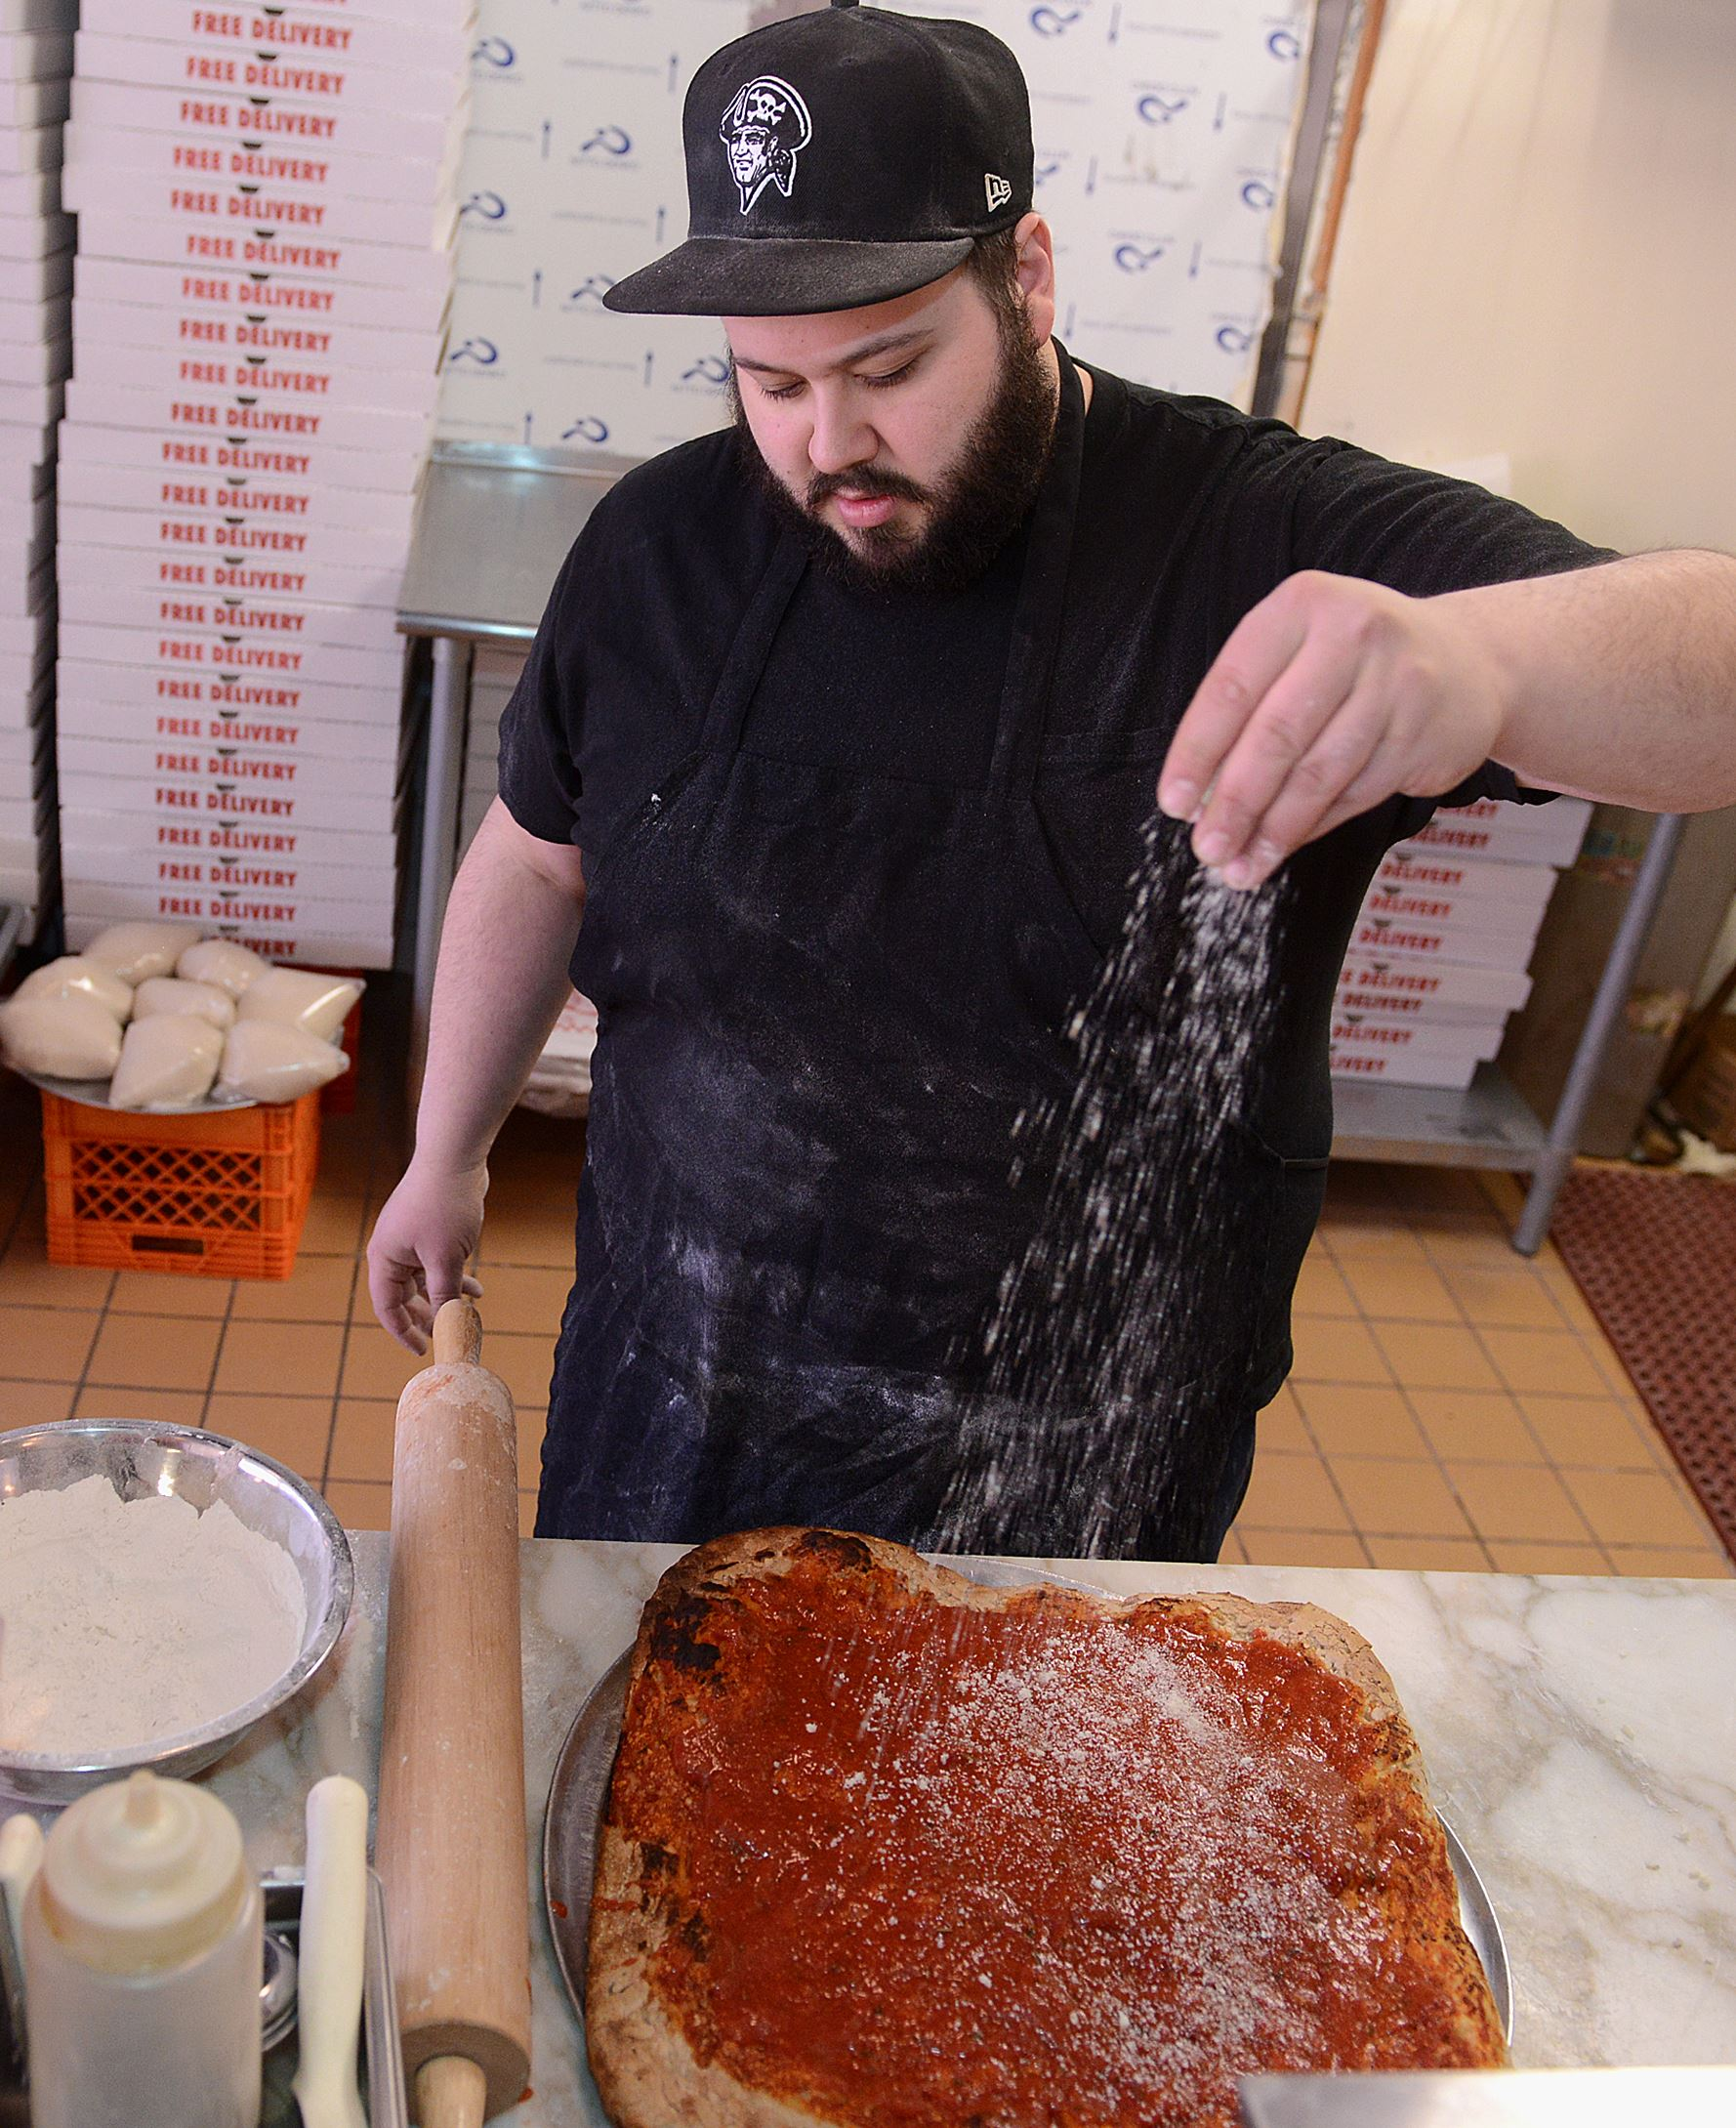 20140326radApizzaBadamoMag01 Anthony Badamo makes Sicilian pizza at A'Pizza Badamo in Mt. Lebanon.